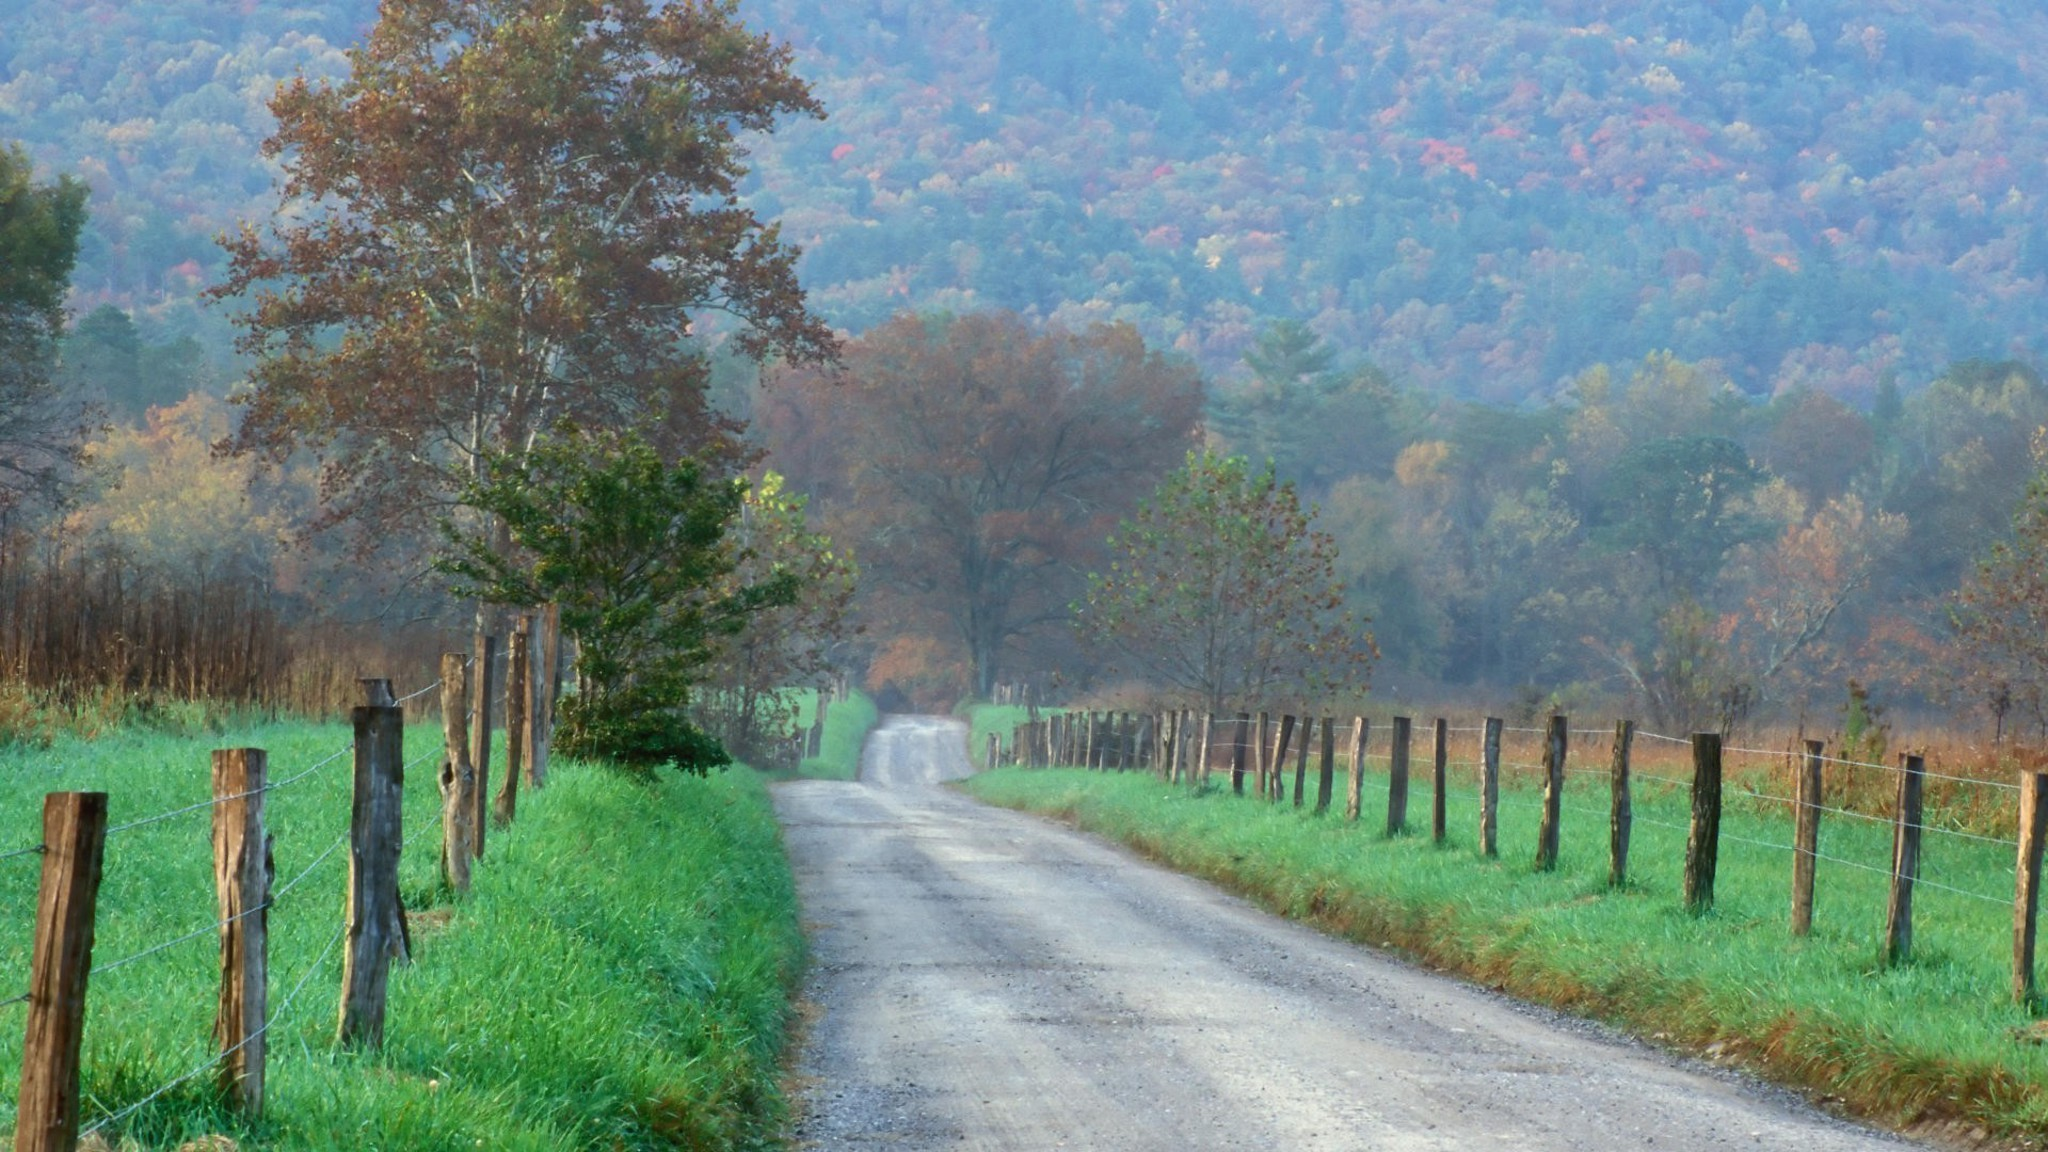 Country Road through Cades Cove, Great Smoky Mountains, Tennessee загрузить